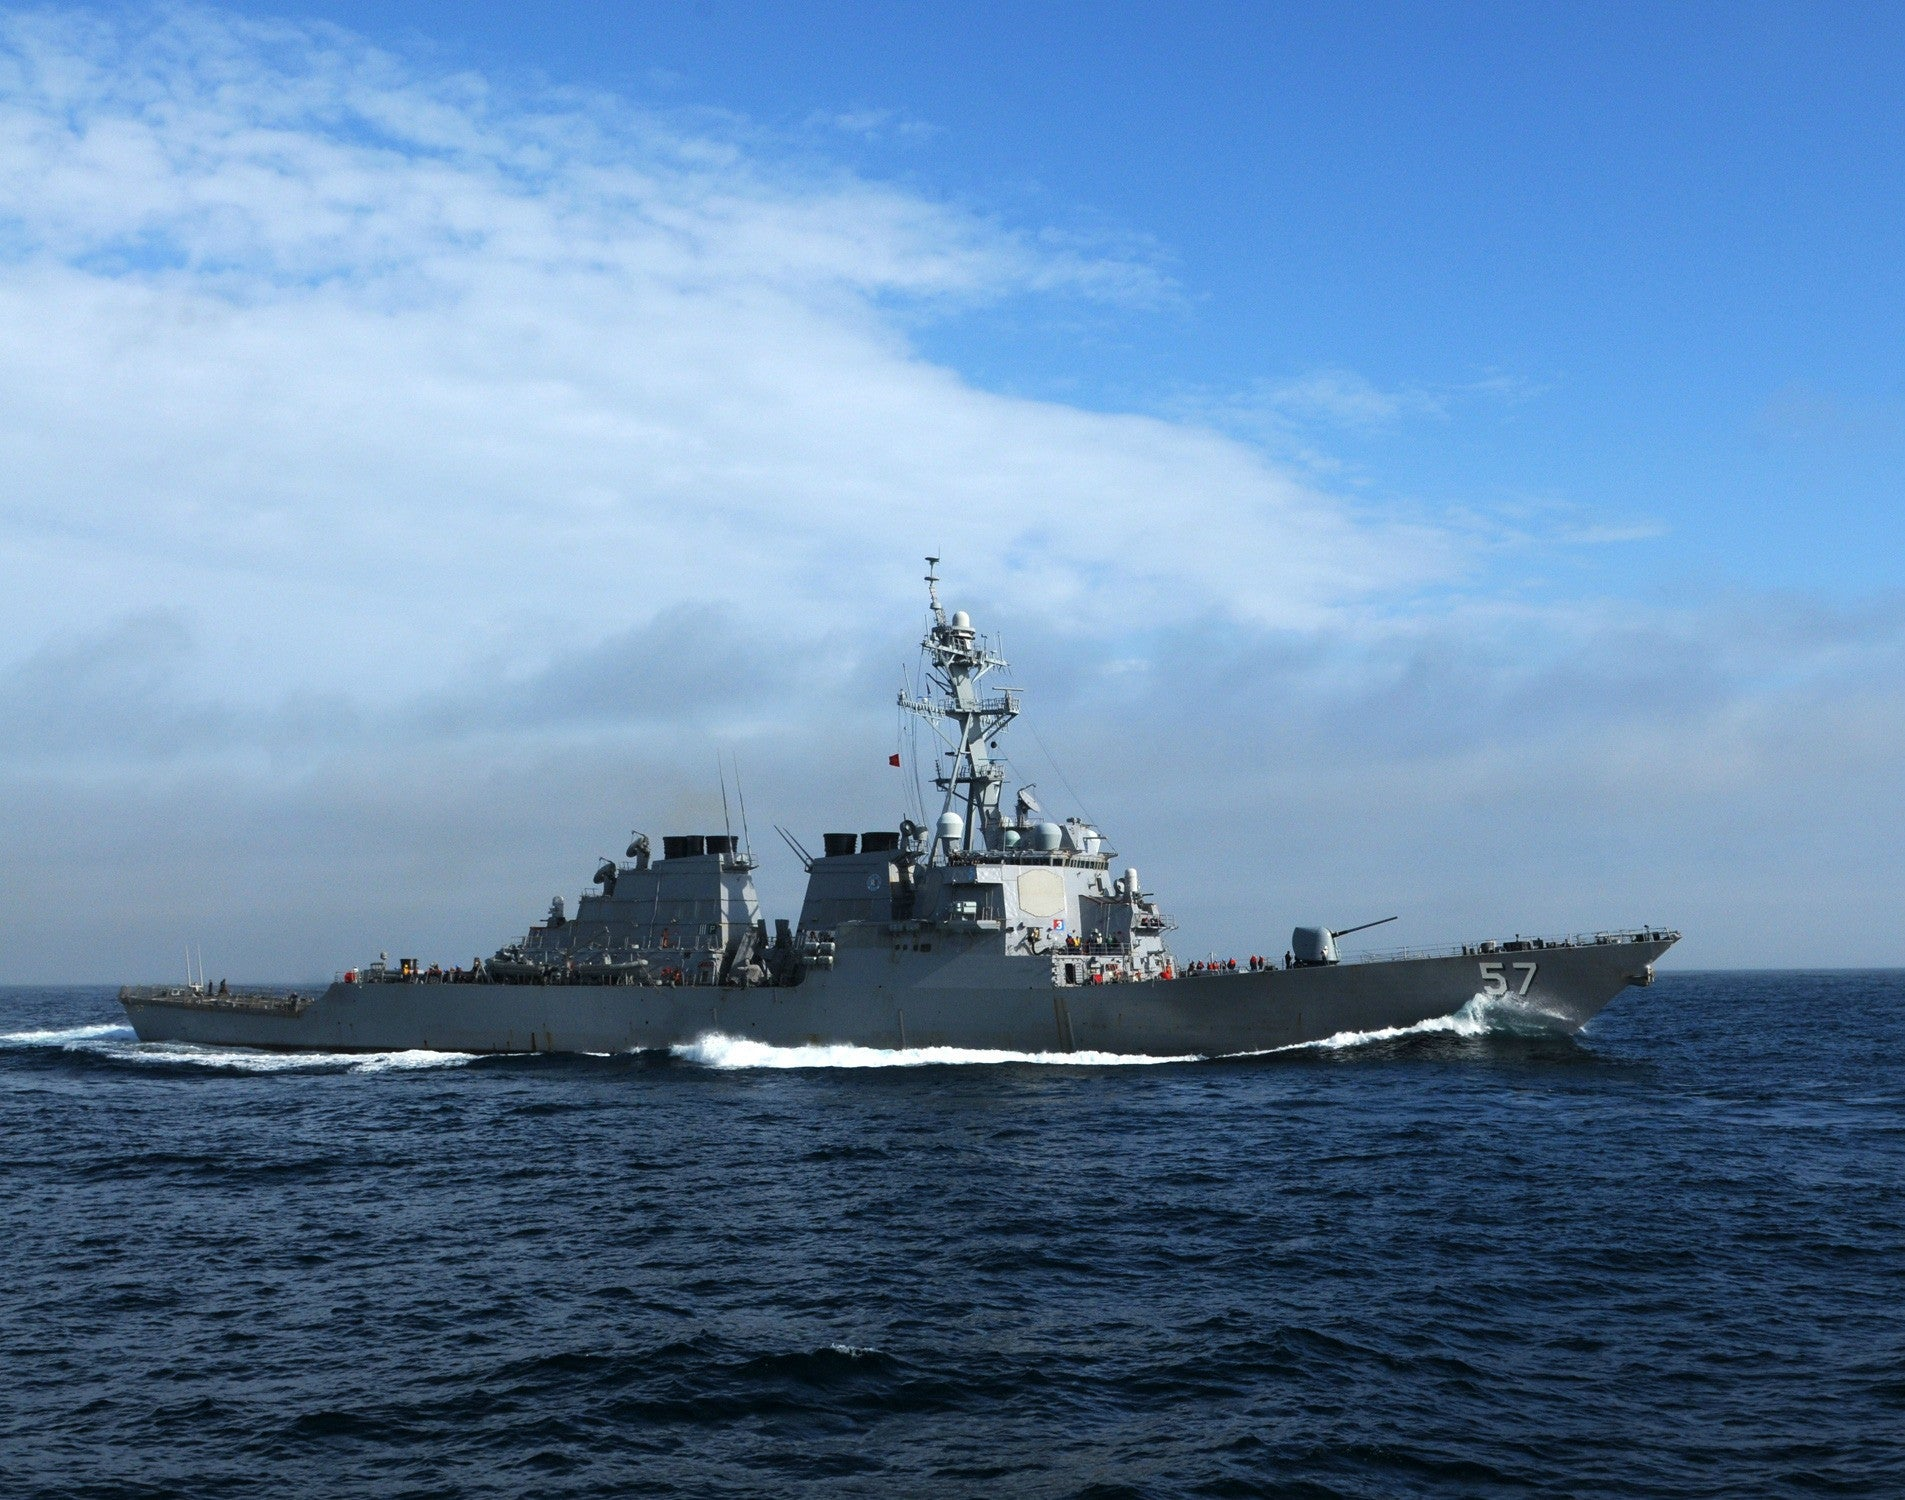 "USS Mitscher DDG-57 Atlantic Ocean May 14, 2011 - 8 x 10"" Photograph"